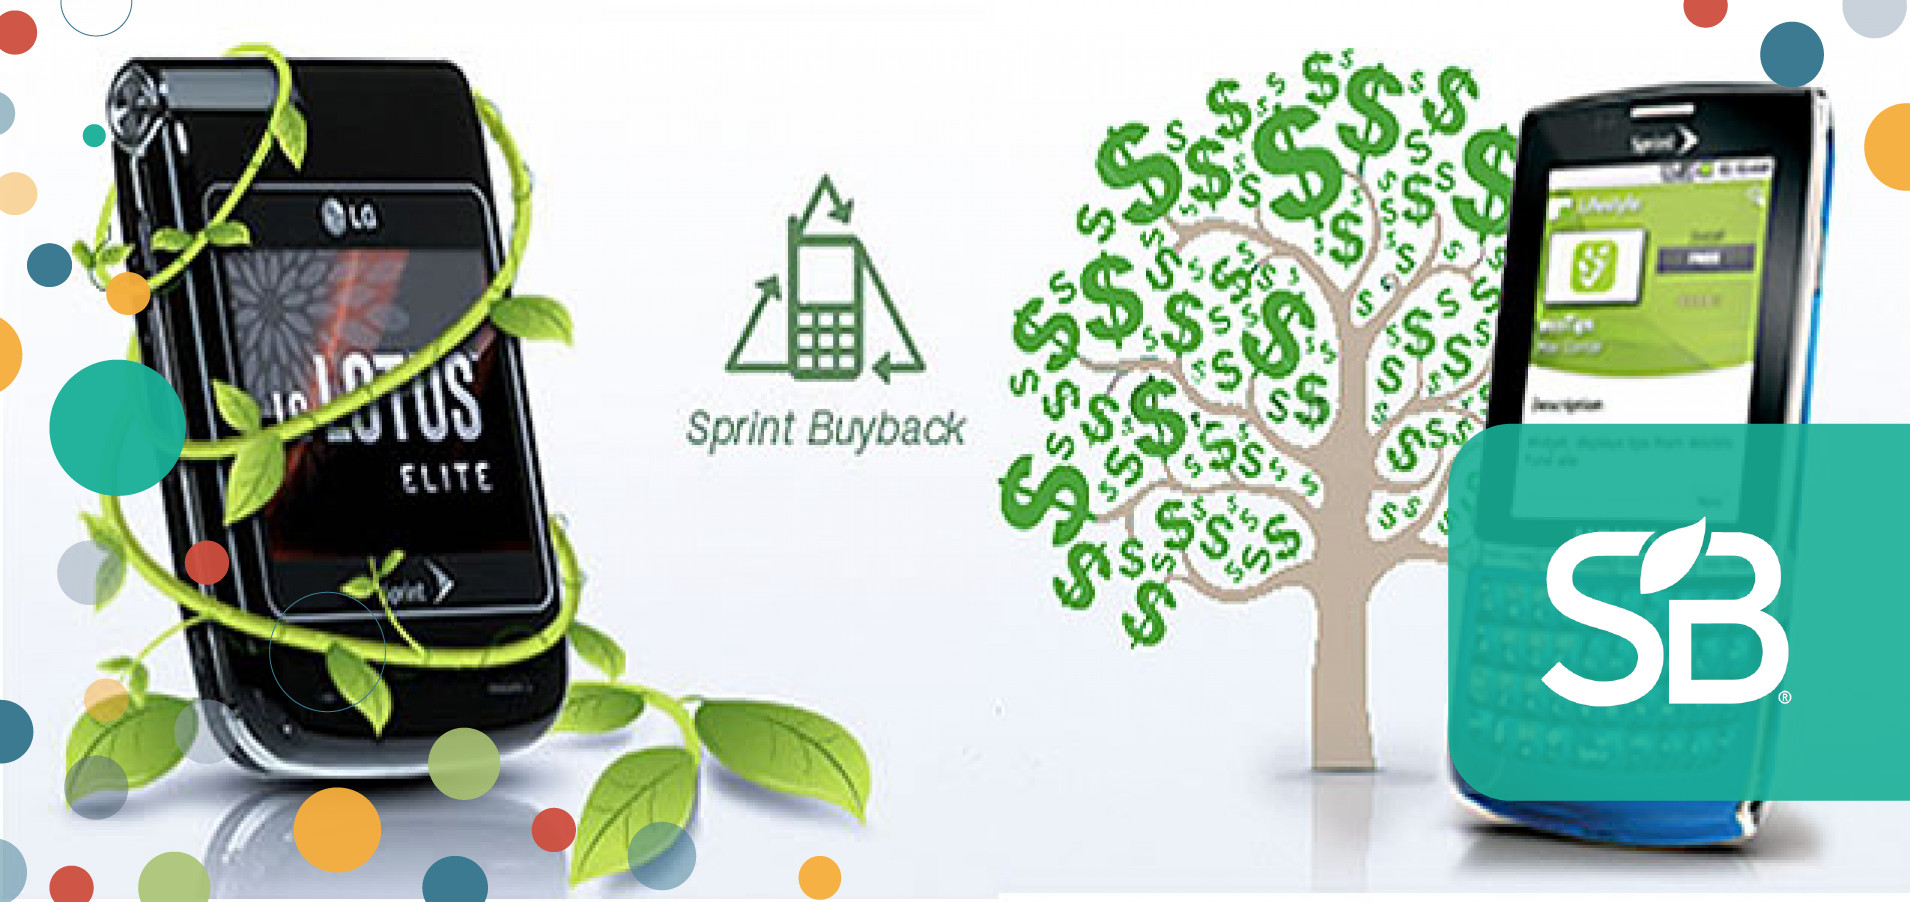 Sprint Offering Buyback Credit on All Phones to Encourage